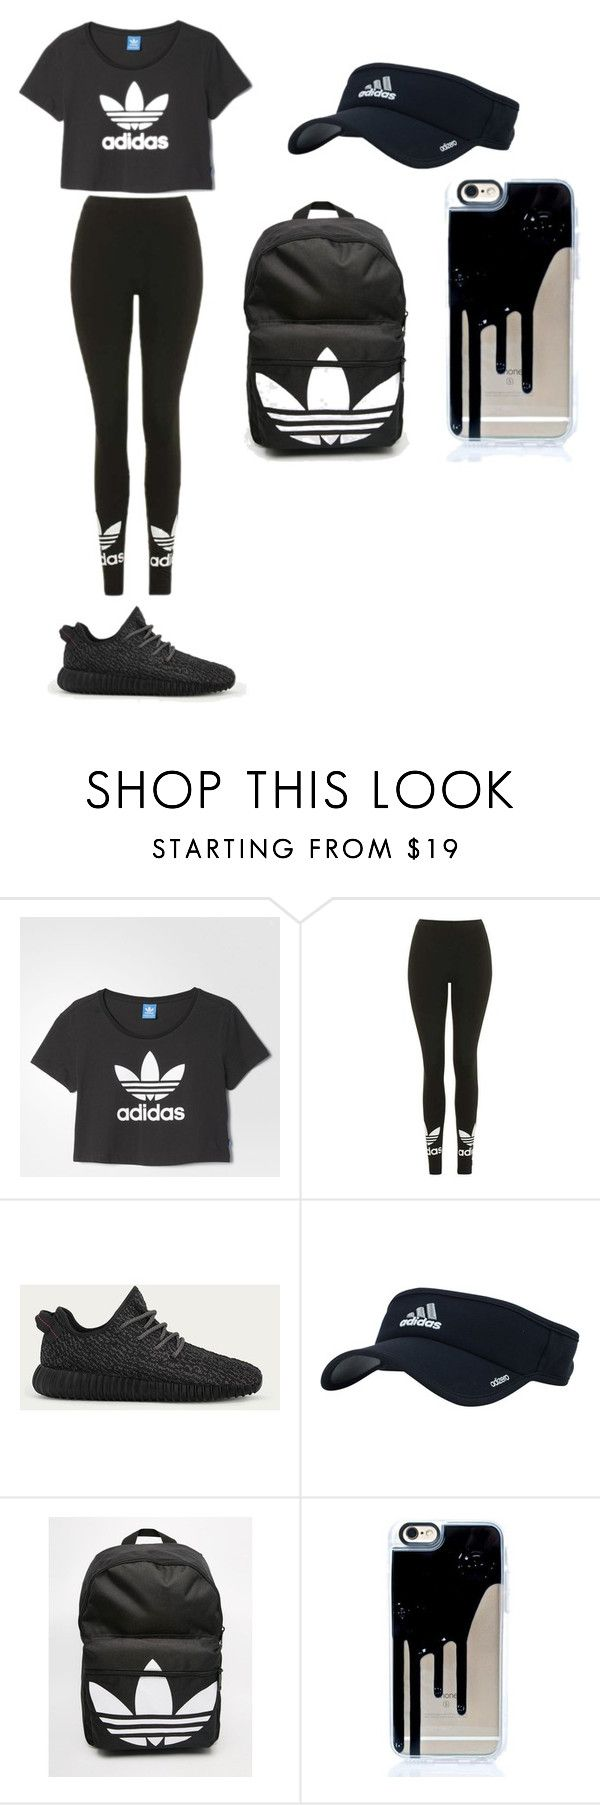 """""""Adidas"""" by mynameisyaya ❤ liked on Polyvore featuring adidas and Topshop"""